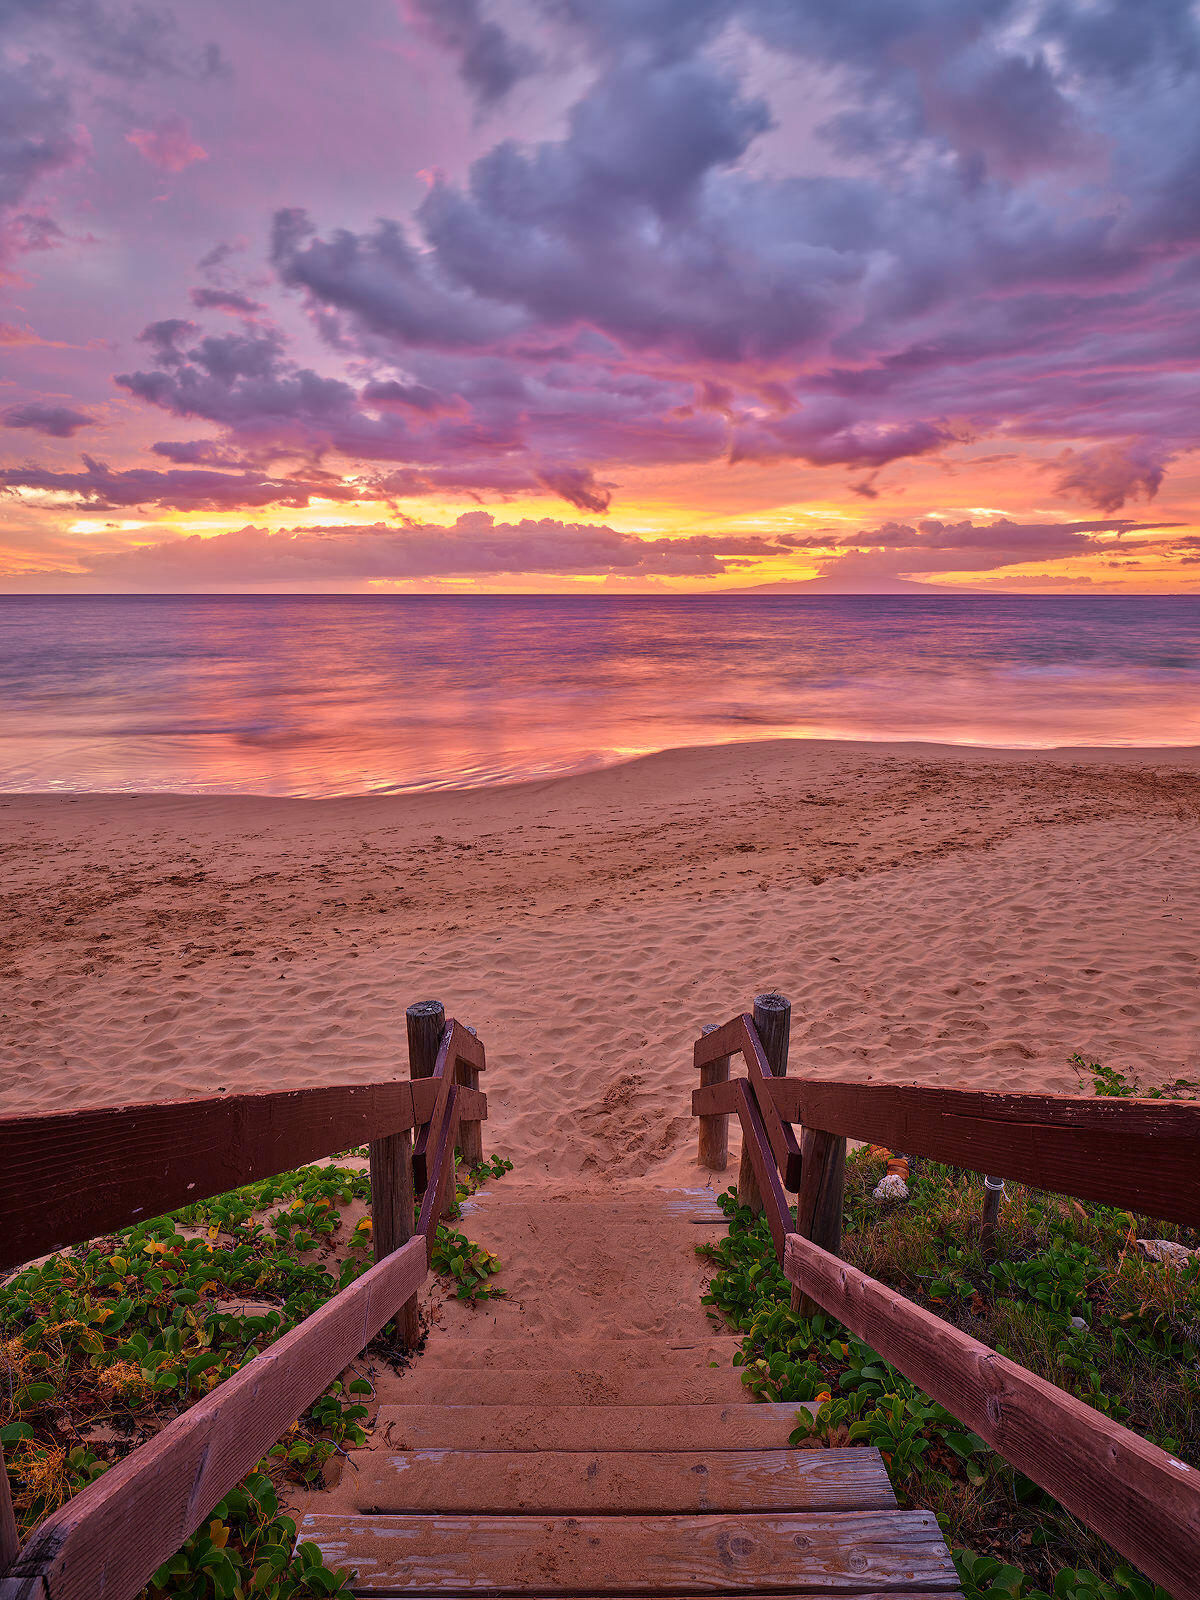 stairway down to a beautiful beach on the Hawaiian island of Maui at sunset featuring pink, purple, and orange colors.  Photographed by Andrew Shoemaker